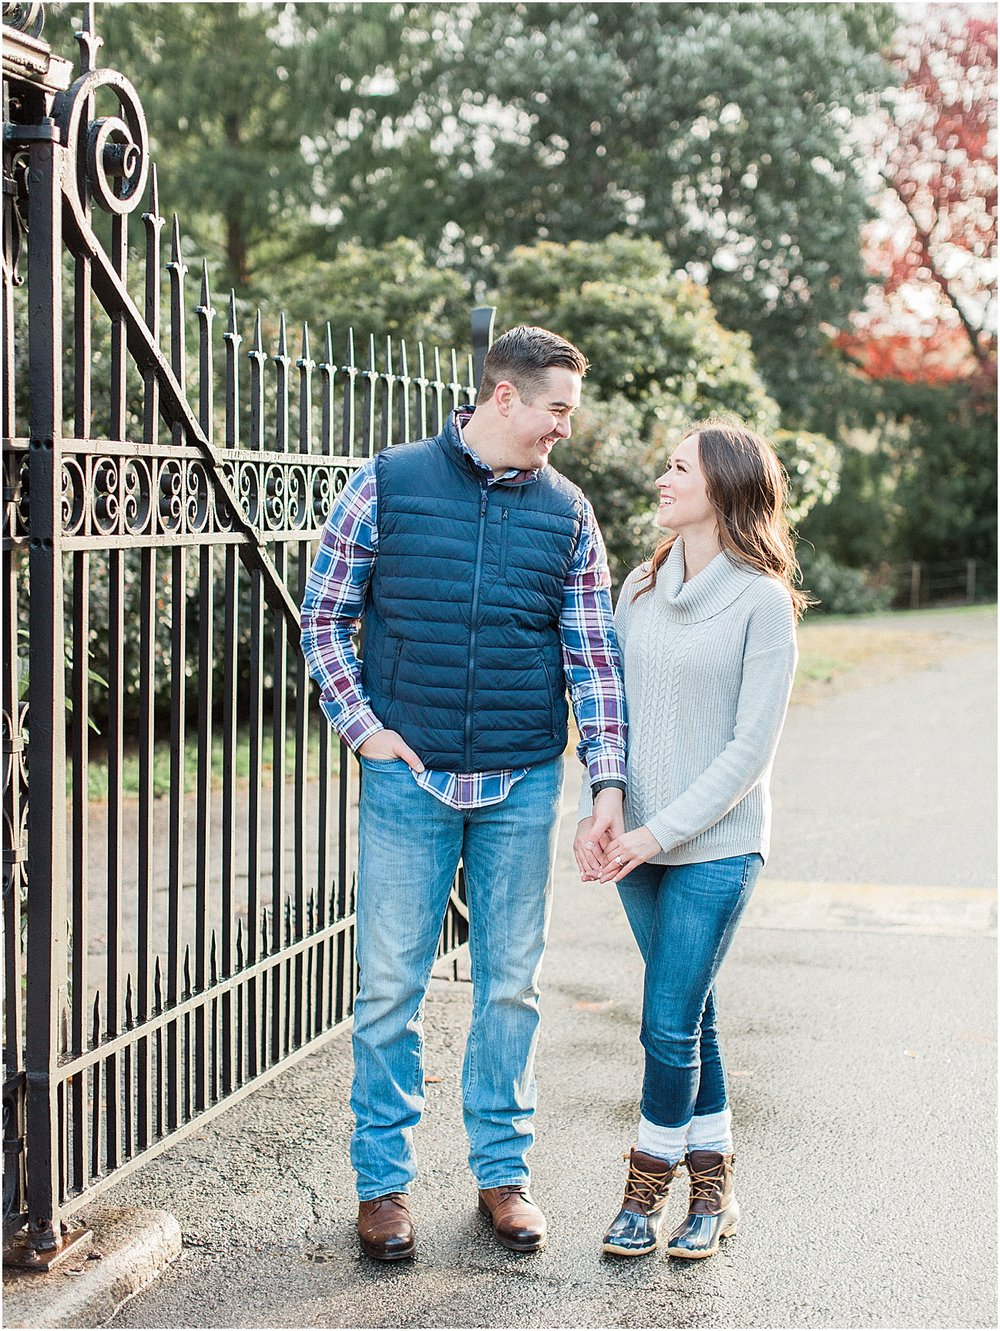 jessica_john_engagement_arnold_arboretum_fall_cape_cod_boston_wedding_photographer_meredith_jane_photography_photo_1705.jpg